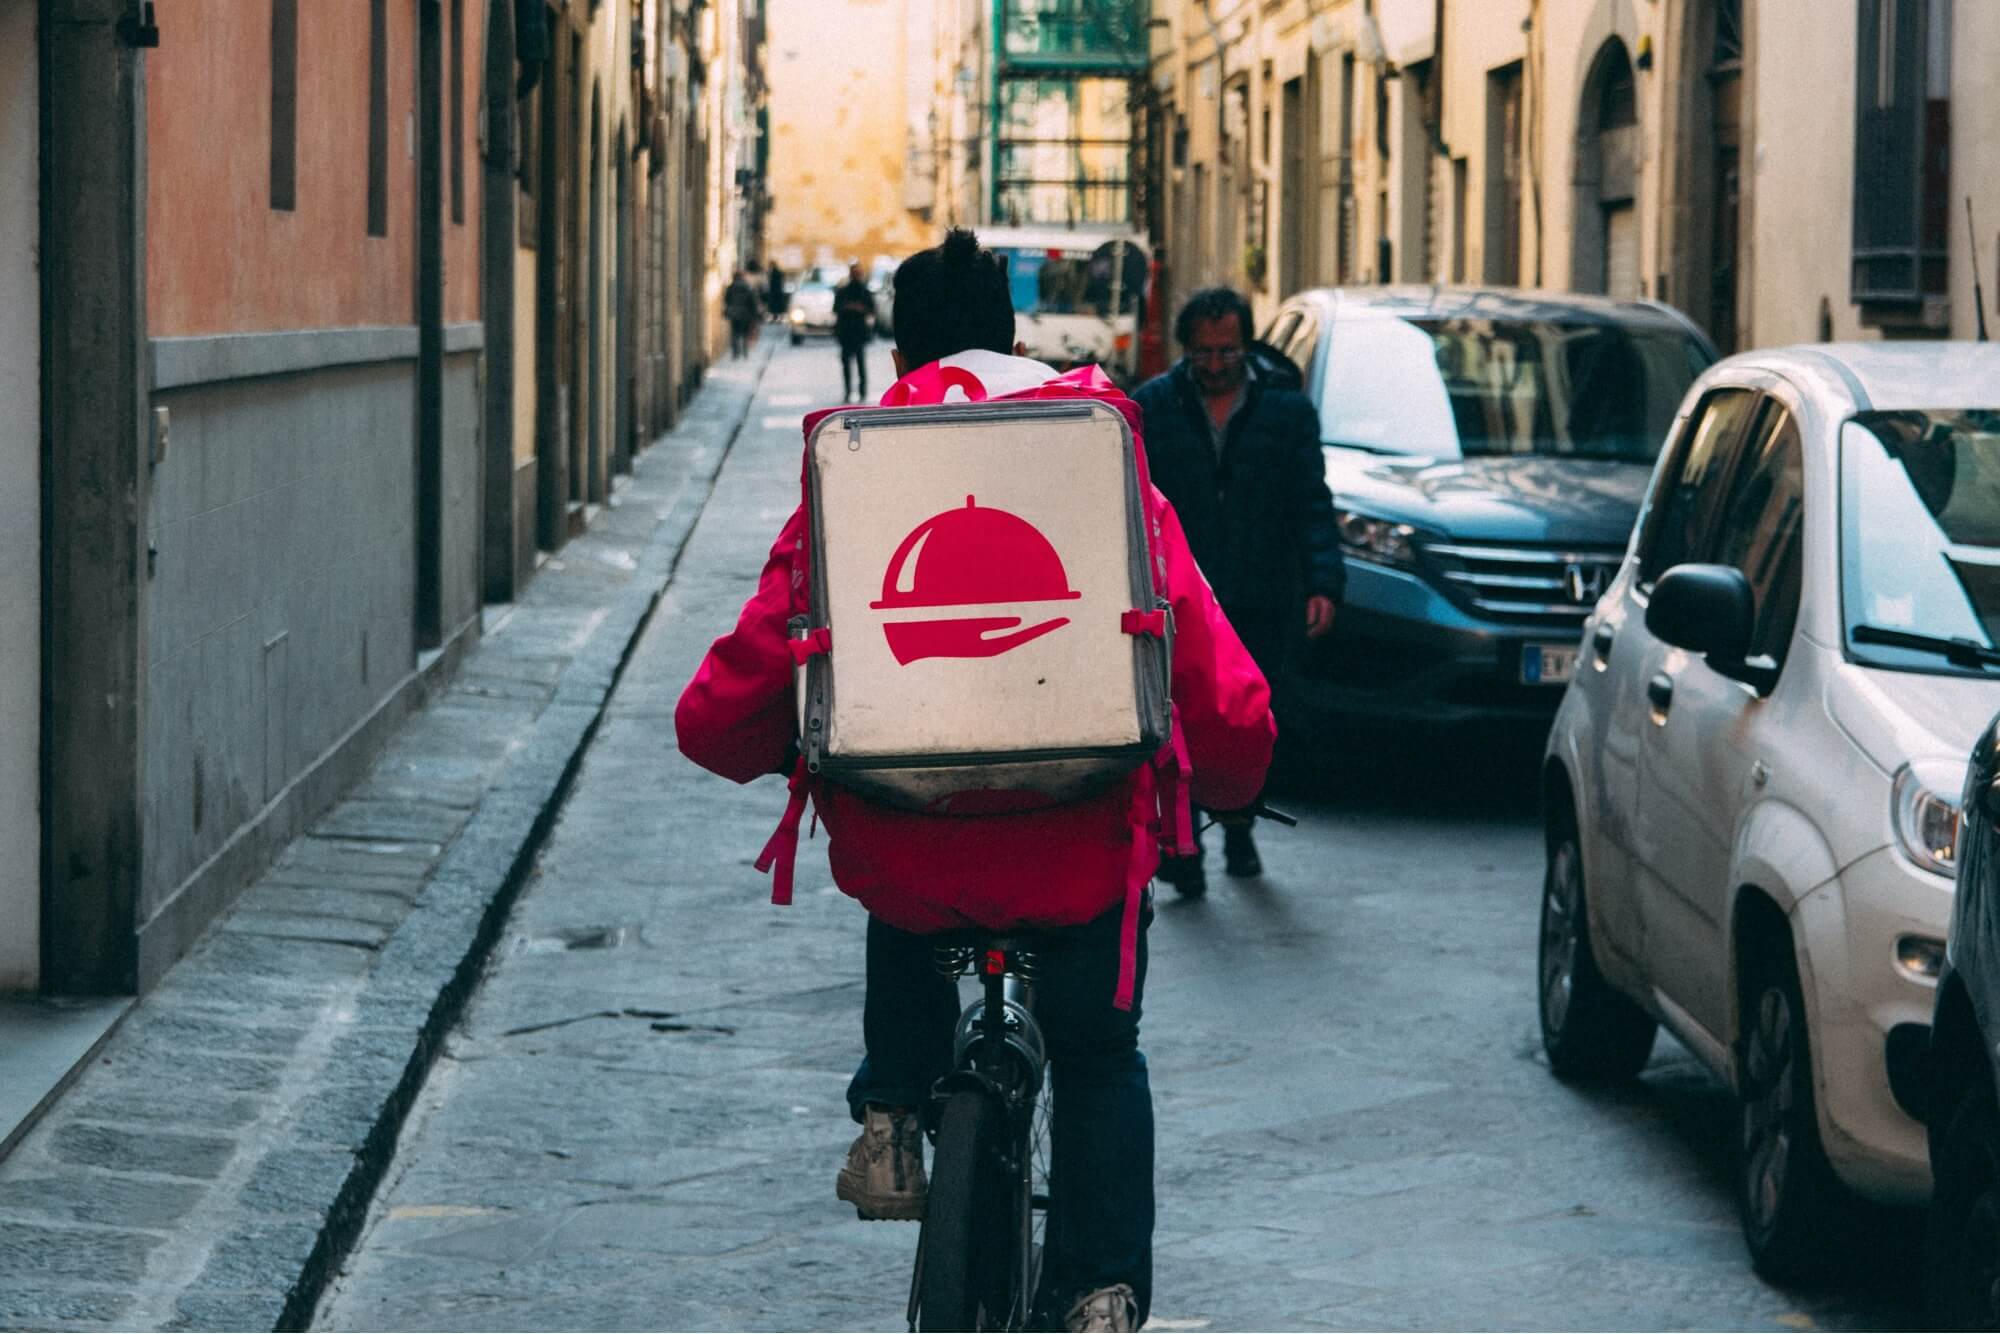 A man in a red jacket on a bicycle with a delivery box on his back making his rounds for Delivery Dudes for restaurants.